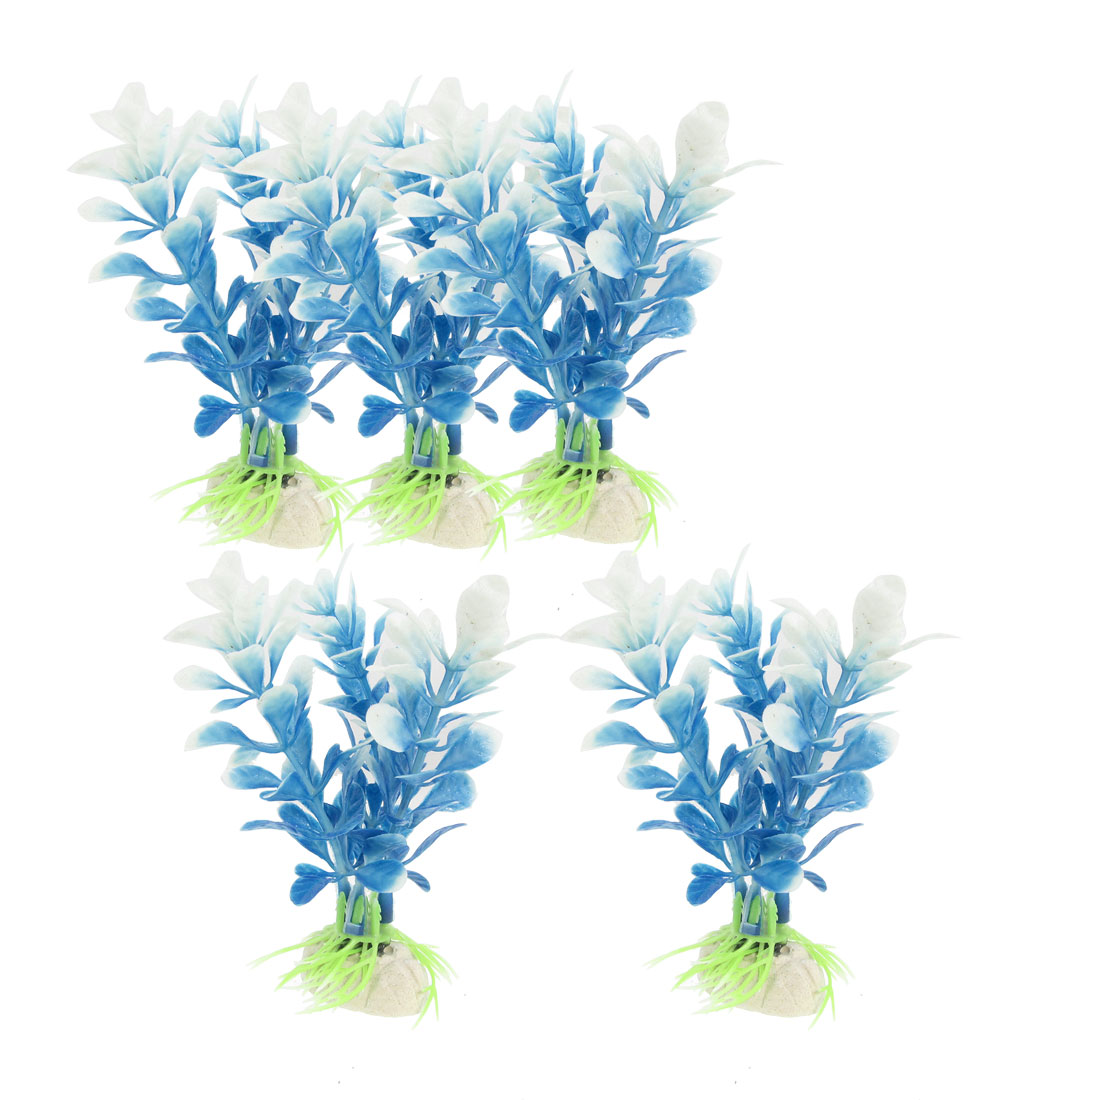 "5 Pcs Ceramic Base Blue White Plastic Plants 4.3"" for Fish Tank Ornament"